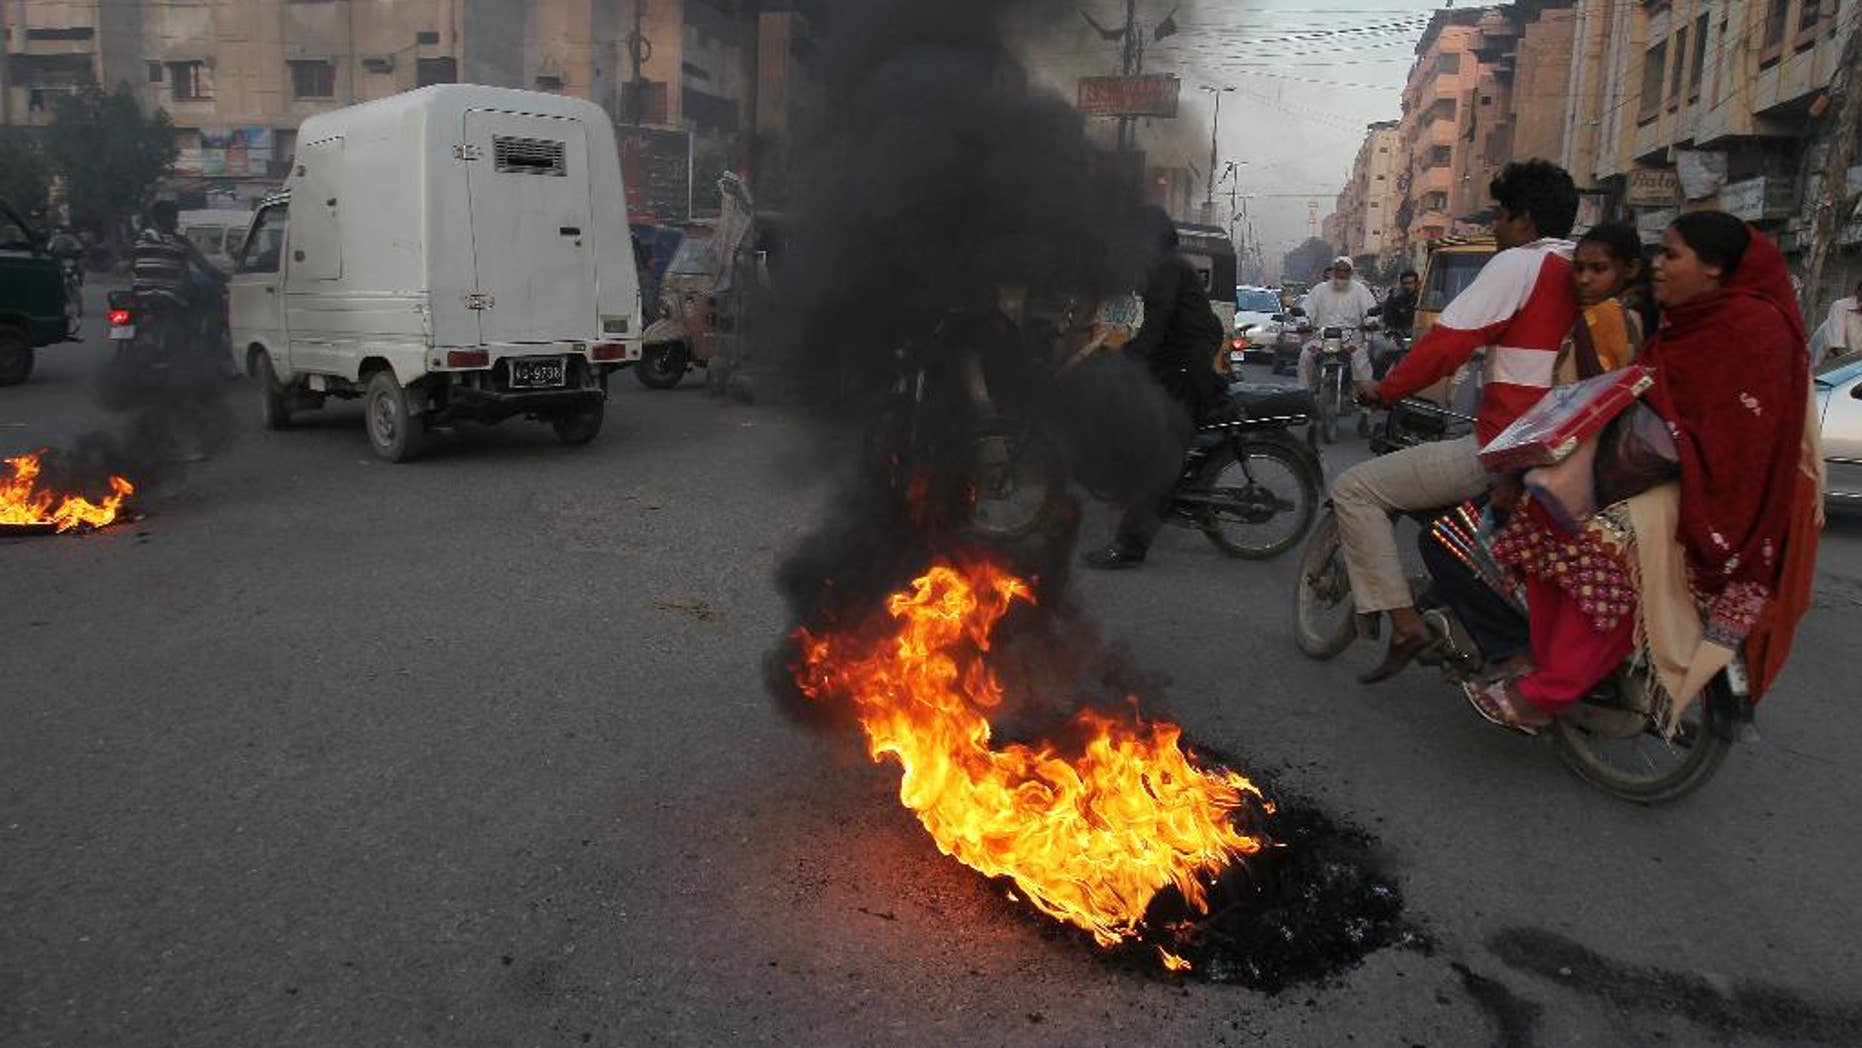 Pakistani protesters burn tires to condemn a blast at a Shiite mosque, Friday, Jan. 30, 2015 in Karachi, Pakistan. The bomb ripped through a mosque in Pakistan belonging to members of the Shiite minority sect of Islam just as worshippers were gathering for Friday prayers, killing dozens of people and wounding many others, officials said. (AP Photo/Fareed Khan)